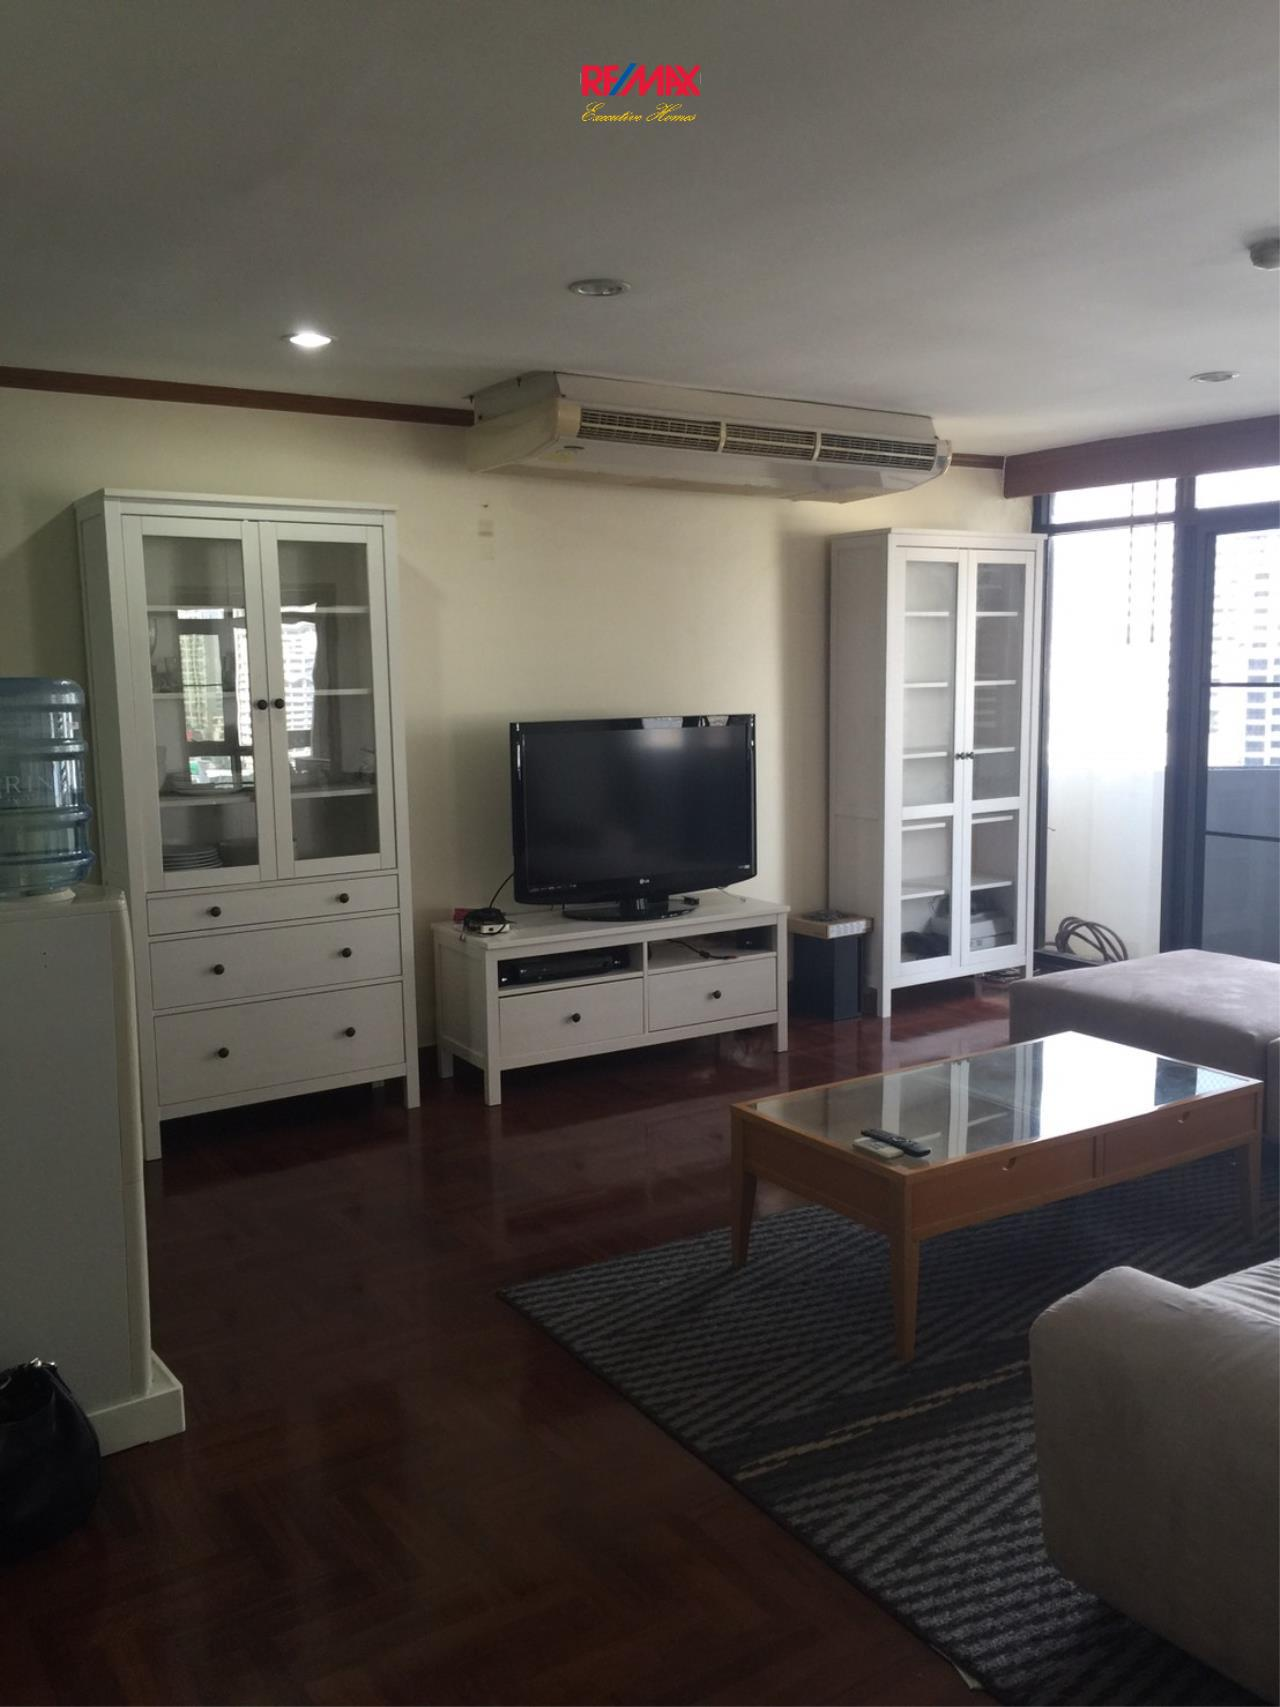 RE/MAX Executive Homes Agency's Nice 2 Bedroom for Rent Waterford Park Thonglor 2